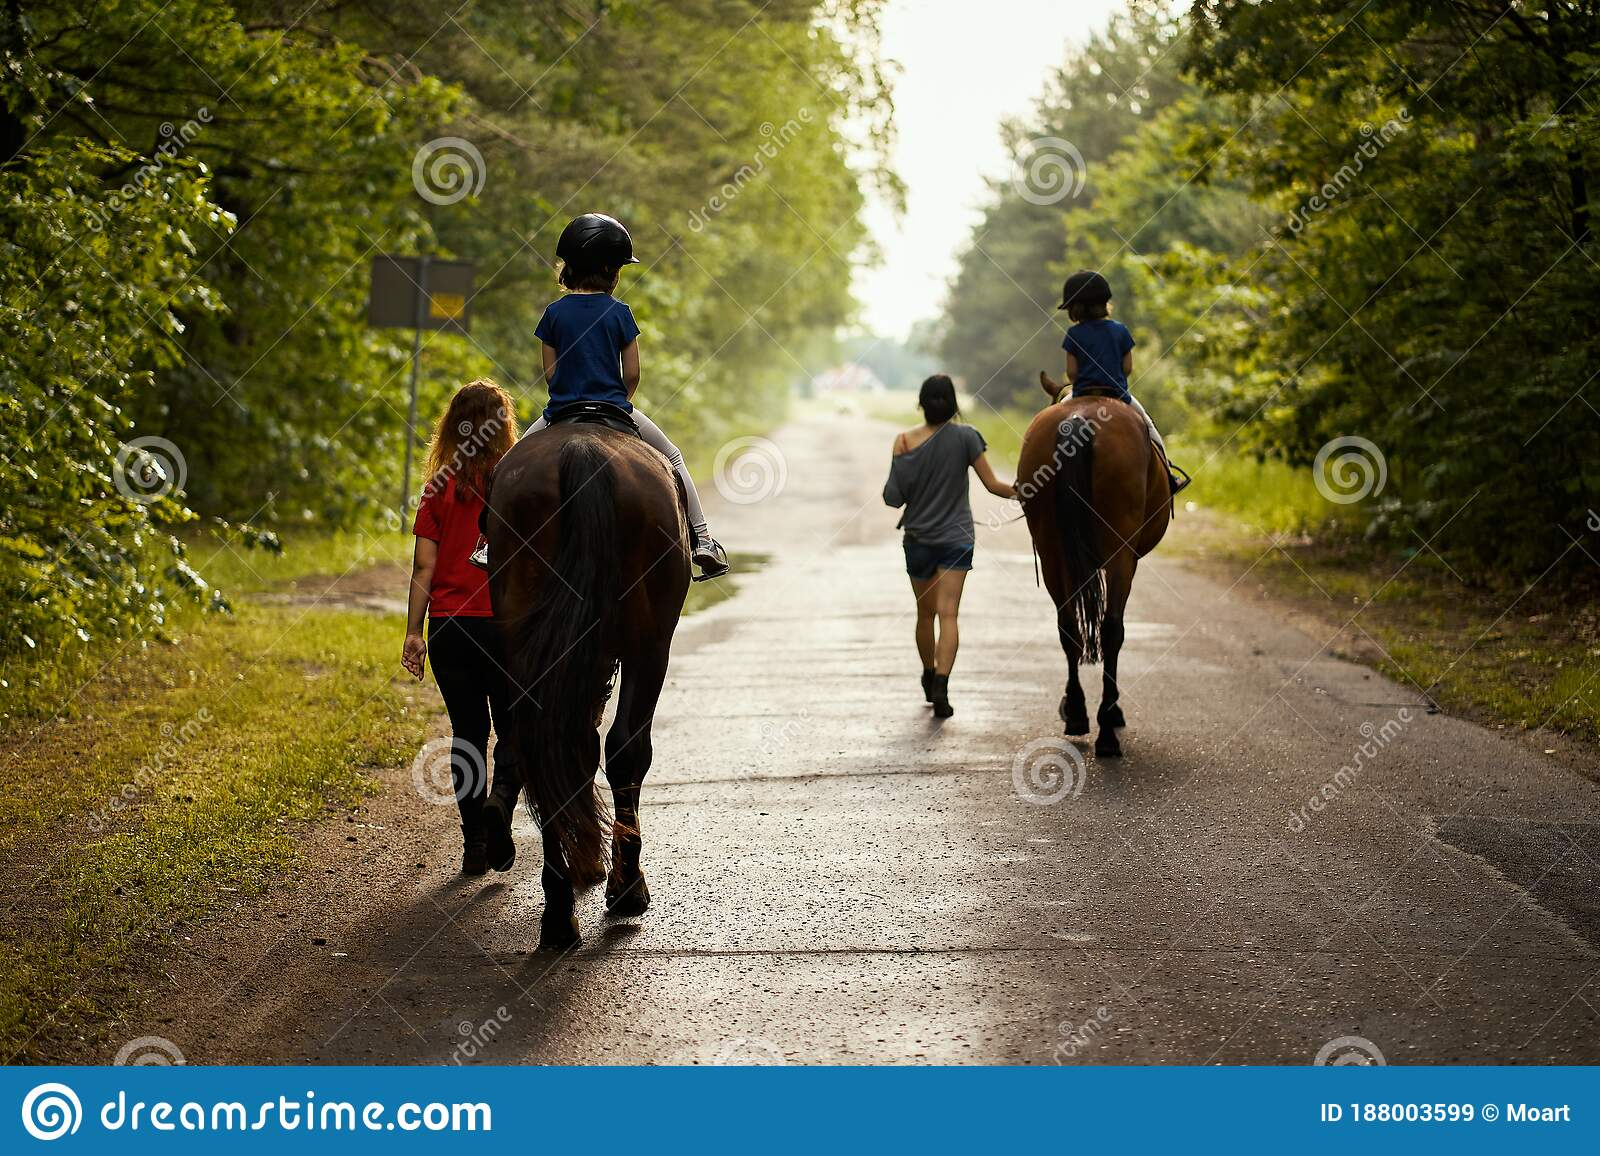 Little Girls Ride Beautiful Horses On The Road In The Forest In Summer Stock Image Image Of Horseback Forest 188003599